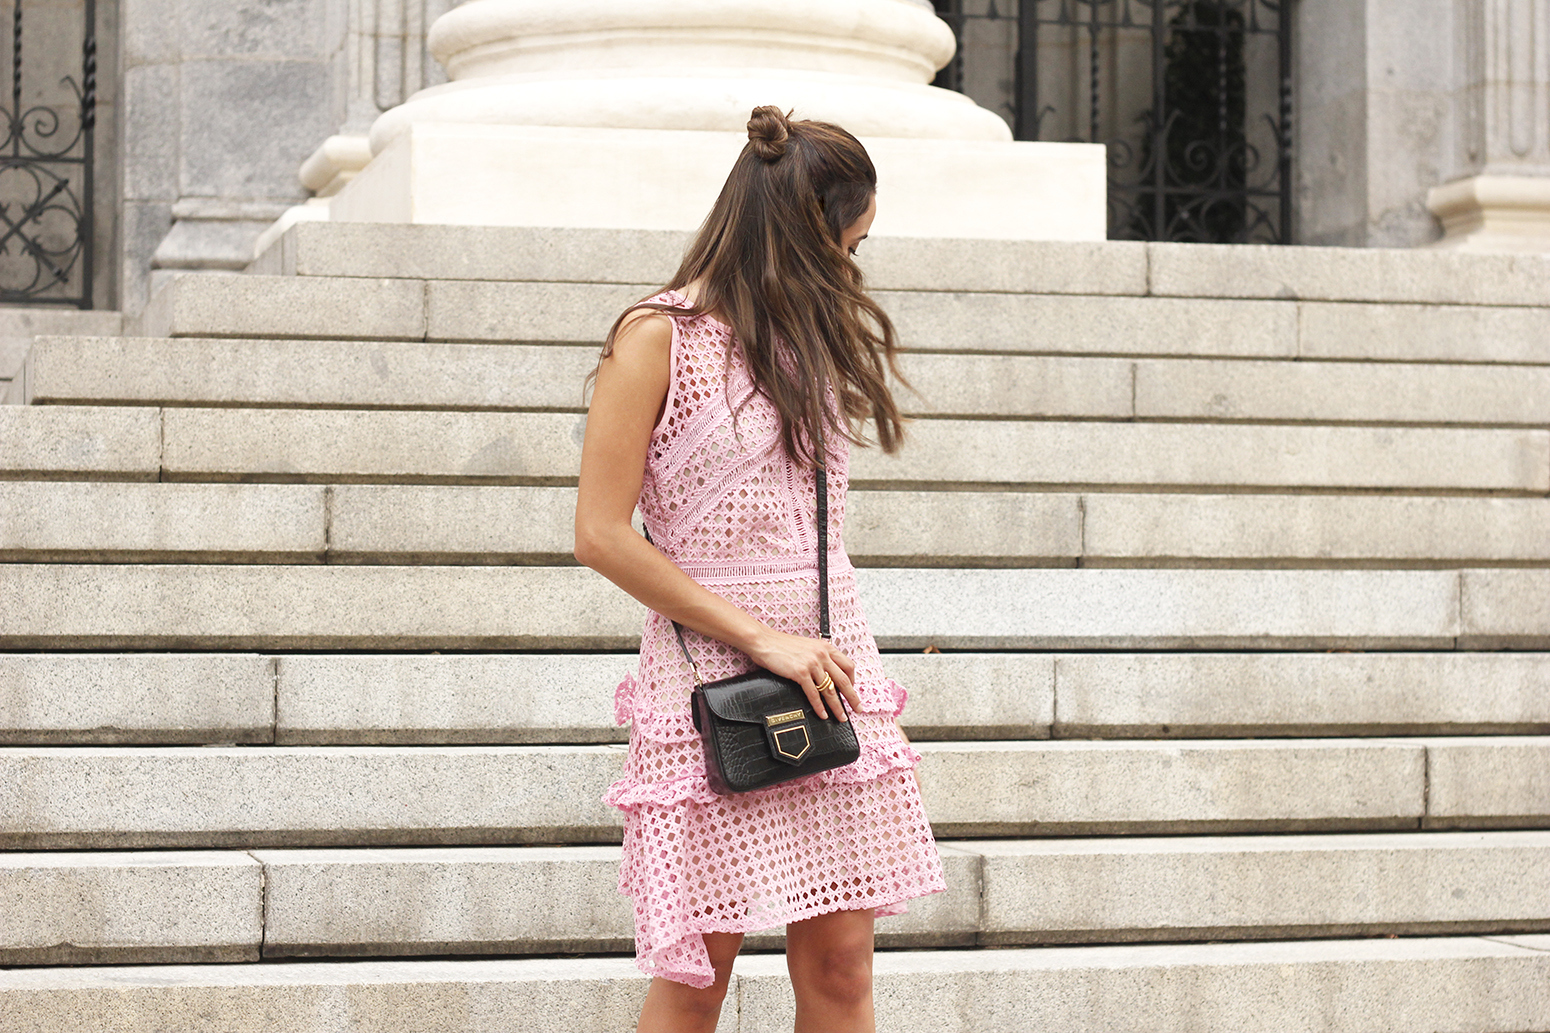 Pink dress summer givenchy bag nude heels outfit girl style09